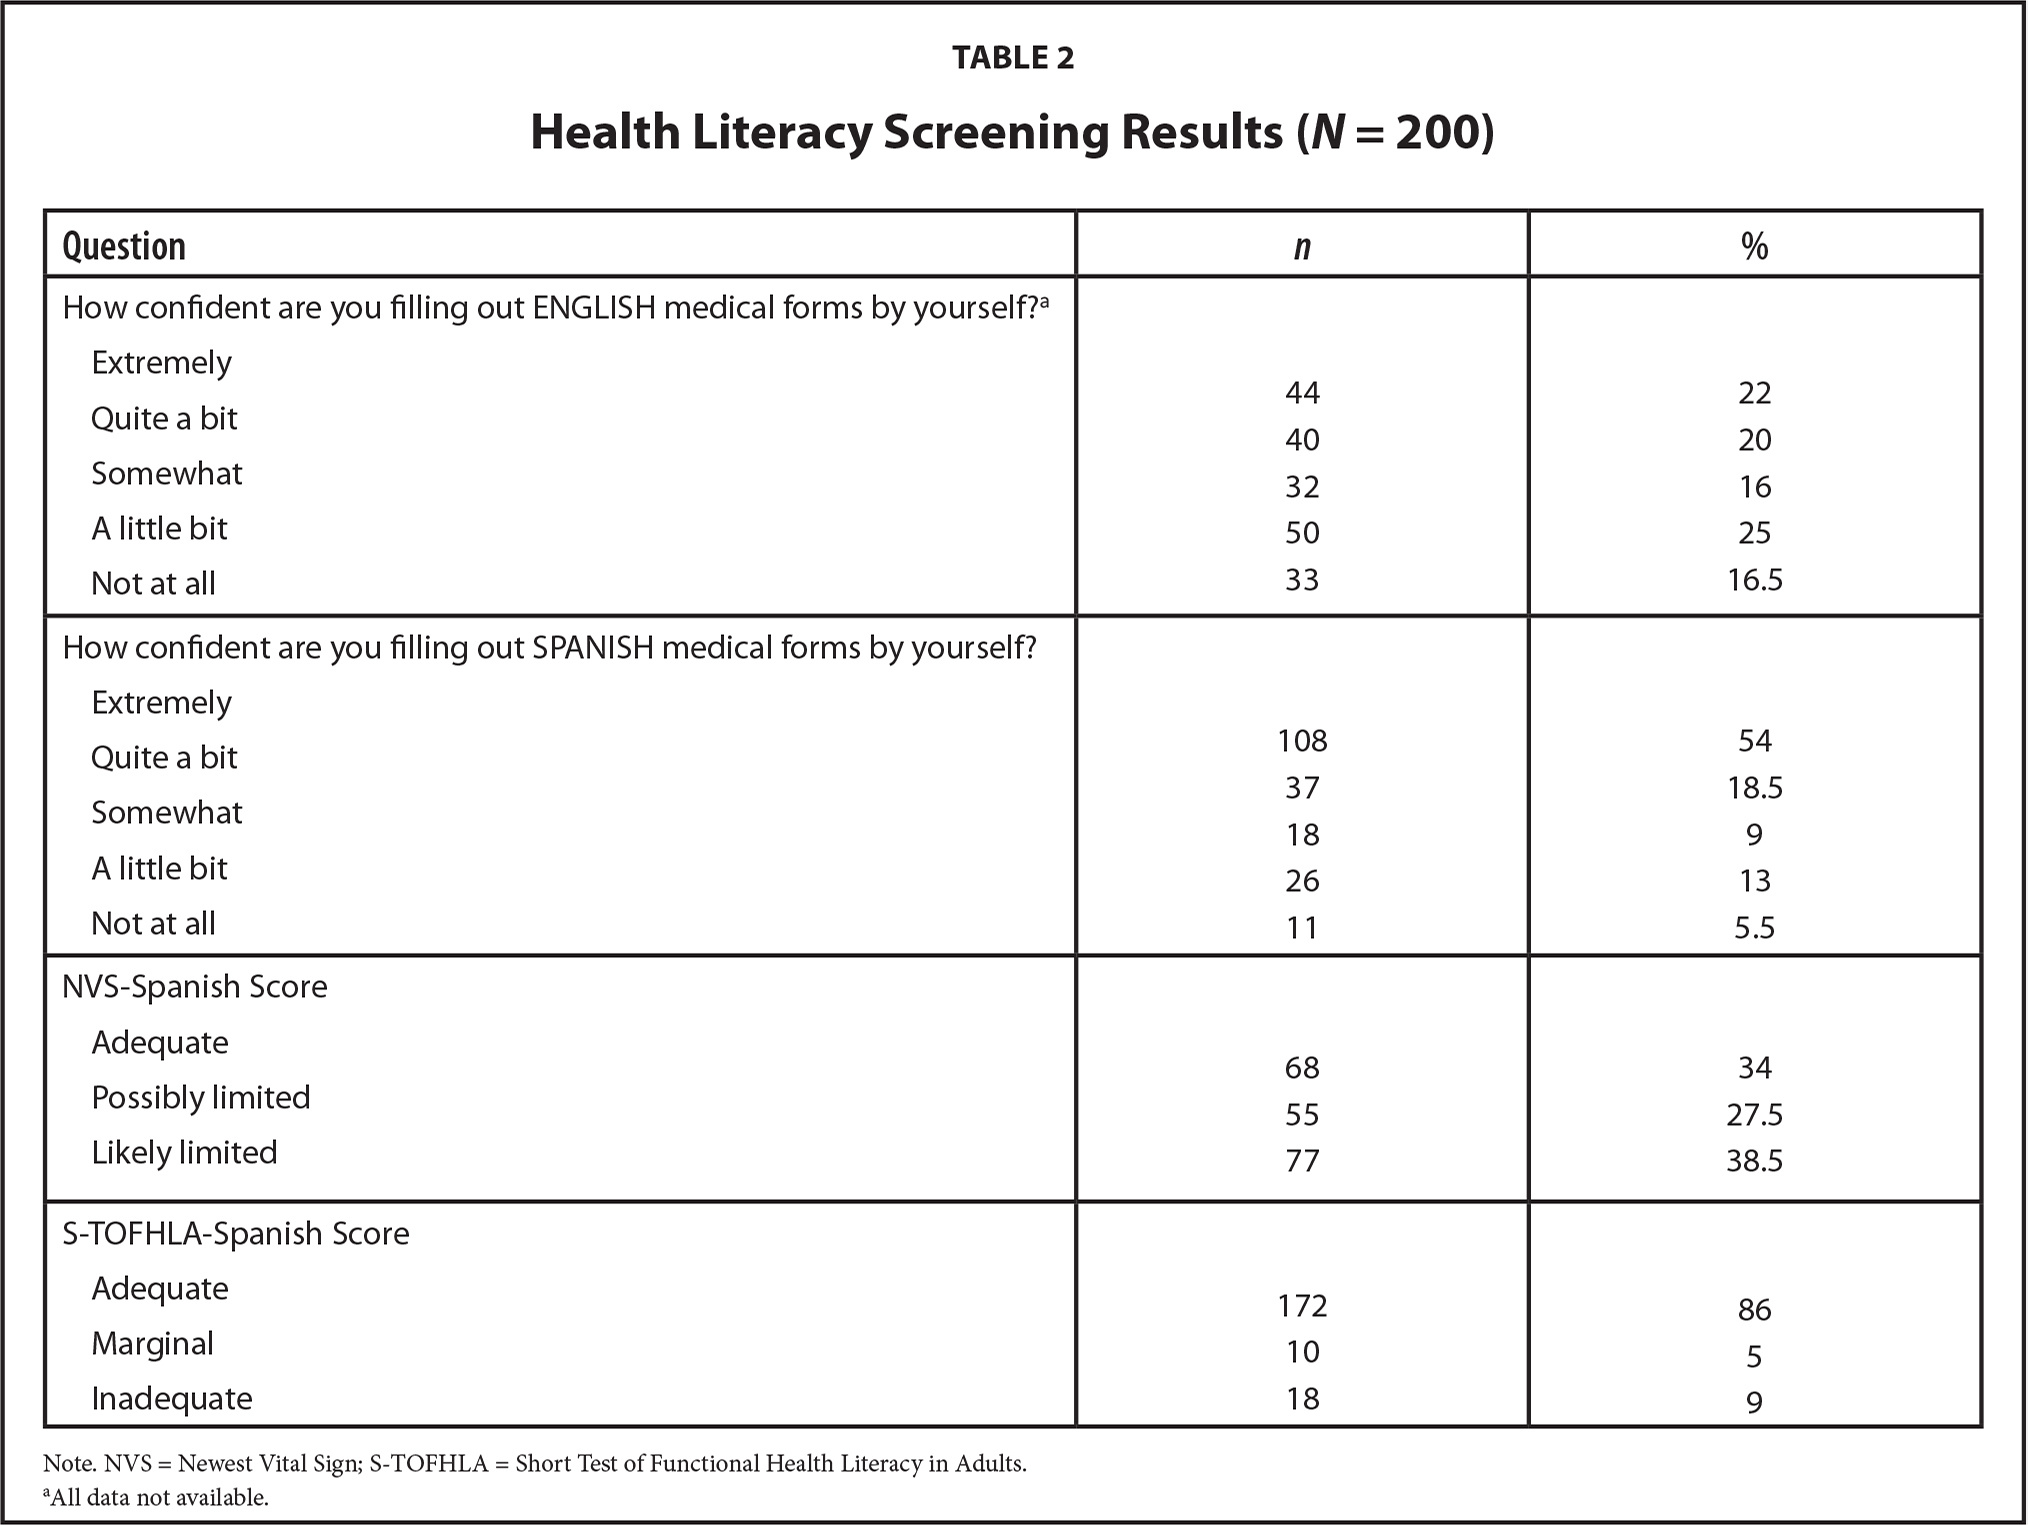 Health Literacy Screening Results (N = 200)